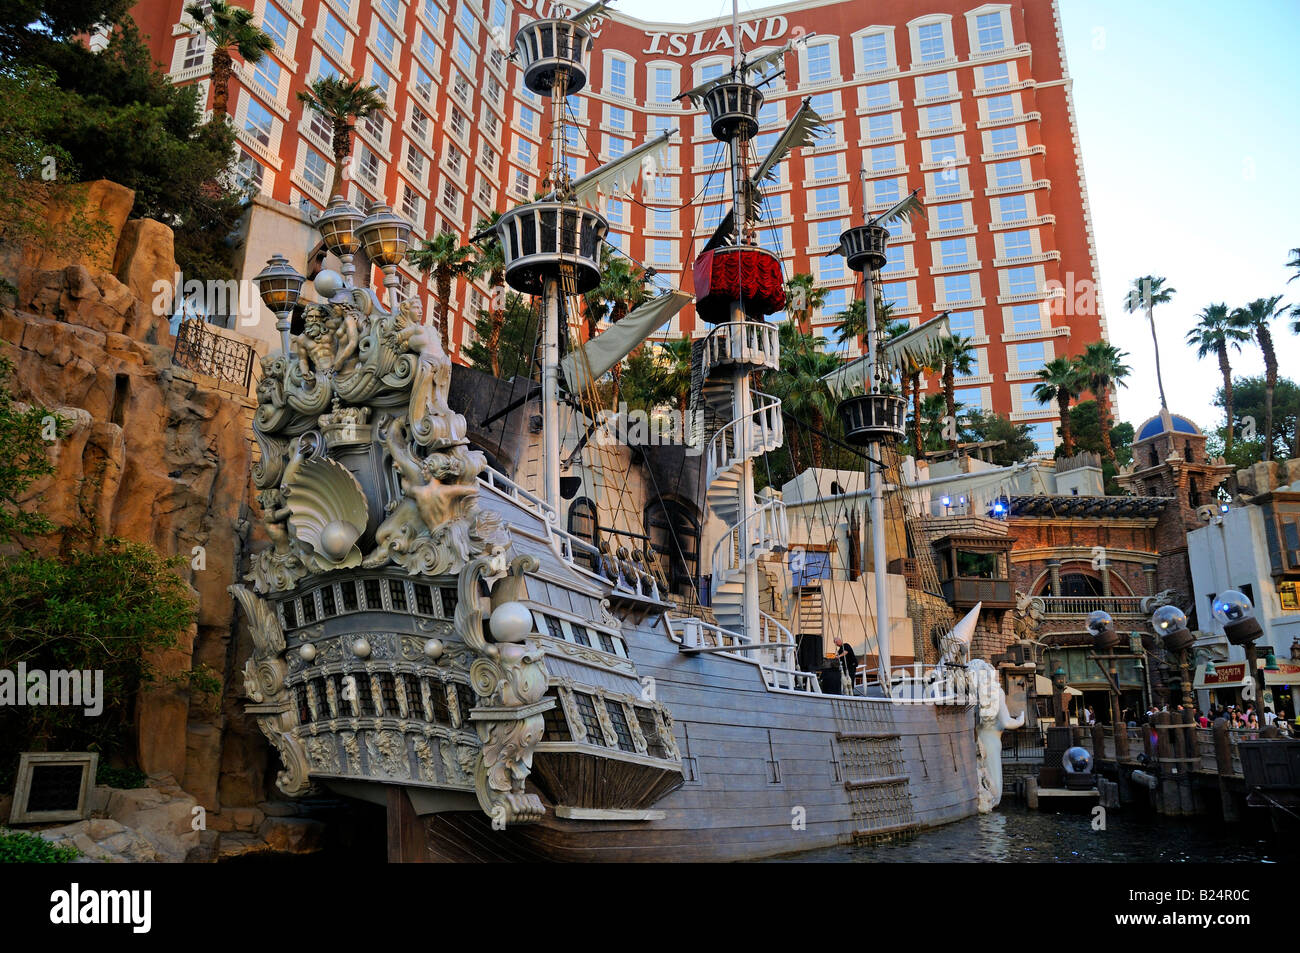 One Of The Pirate Ships At The Treasure Island Hotel And Casino Las Stock Photo Alamy